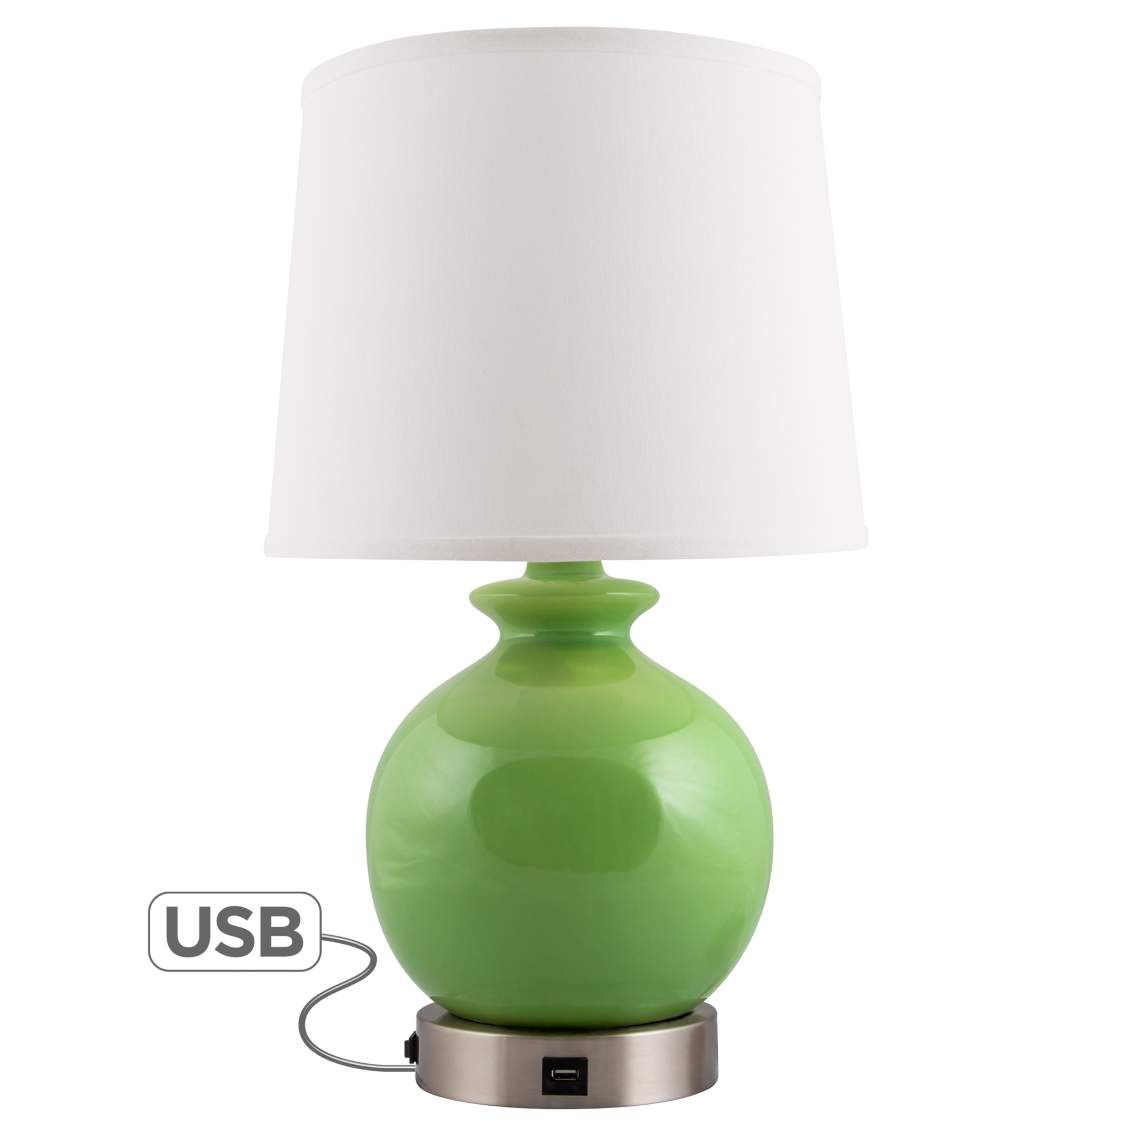 bristol clover green accent table lamp usb port nightand heyburn brushed steel with lamps plus rope coffee mid century outdoor furniture reproduction pier one tures target